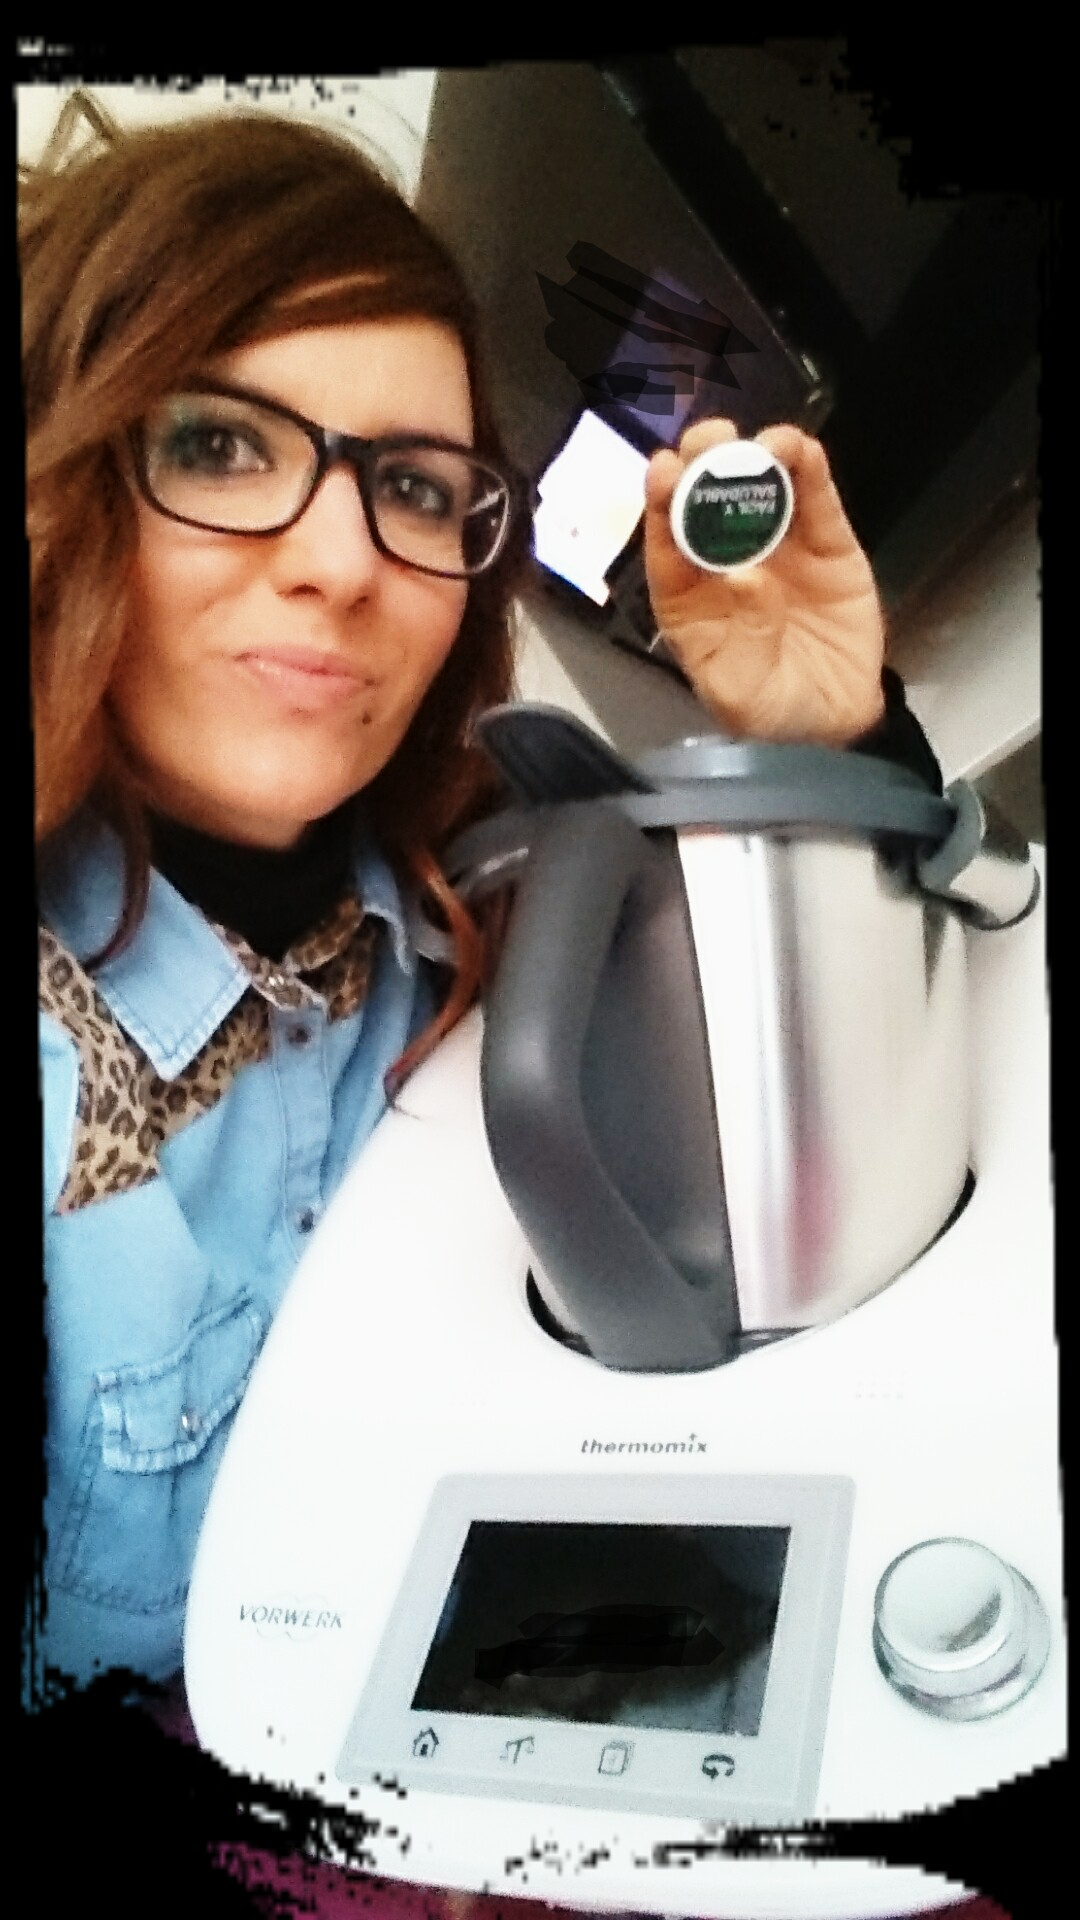 Thermomix® Tm5 y sus libros digitales